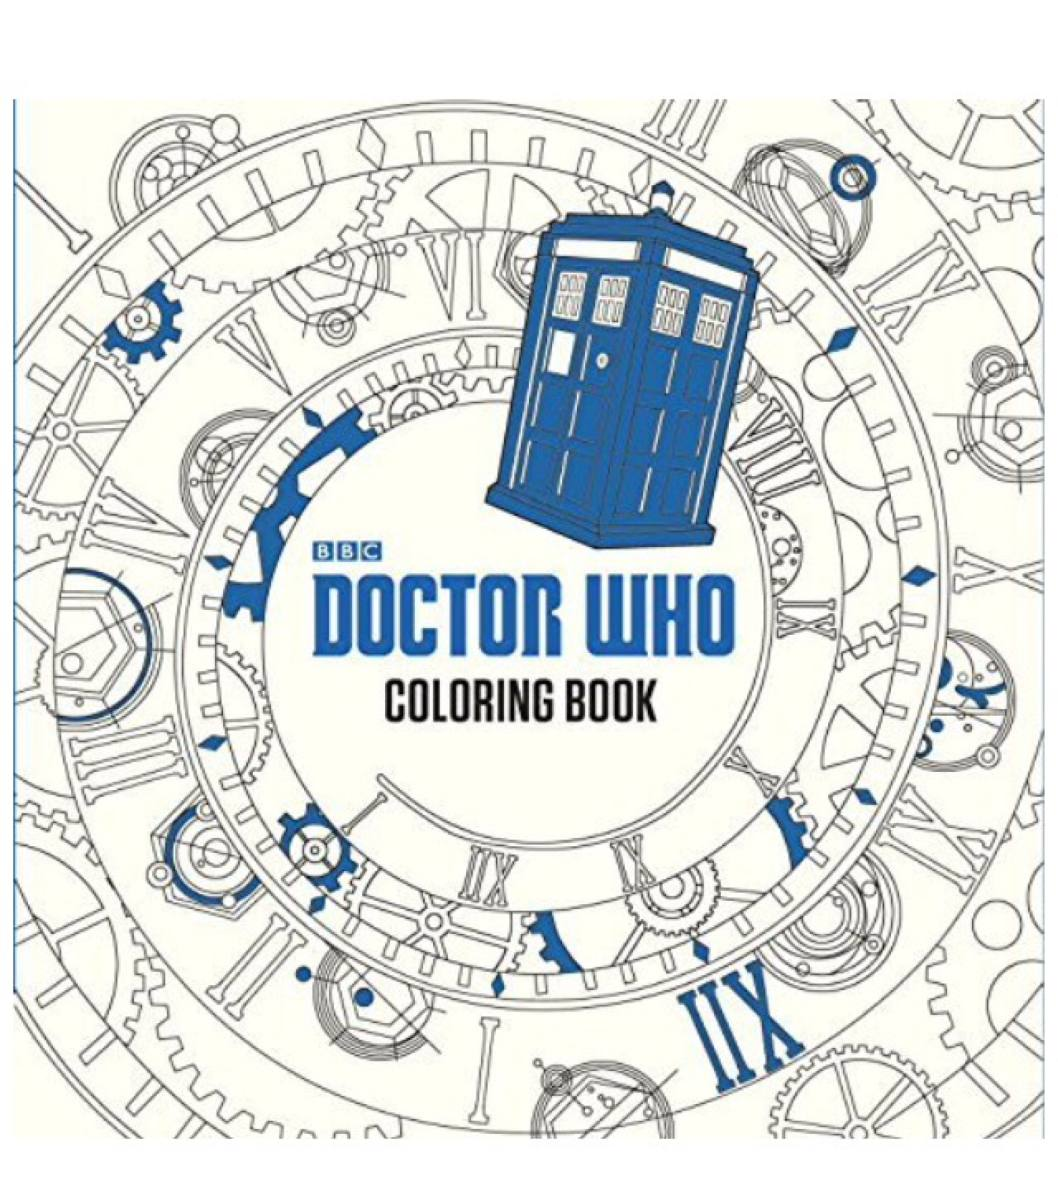 Libro Colorear Doctor Who Original - S/ 59,00 en Mercado Libre